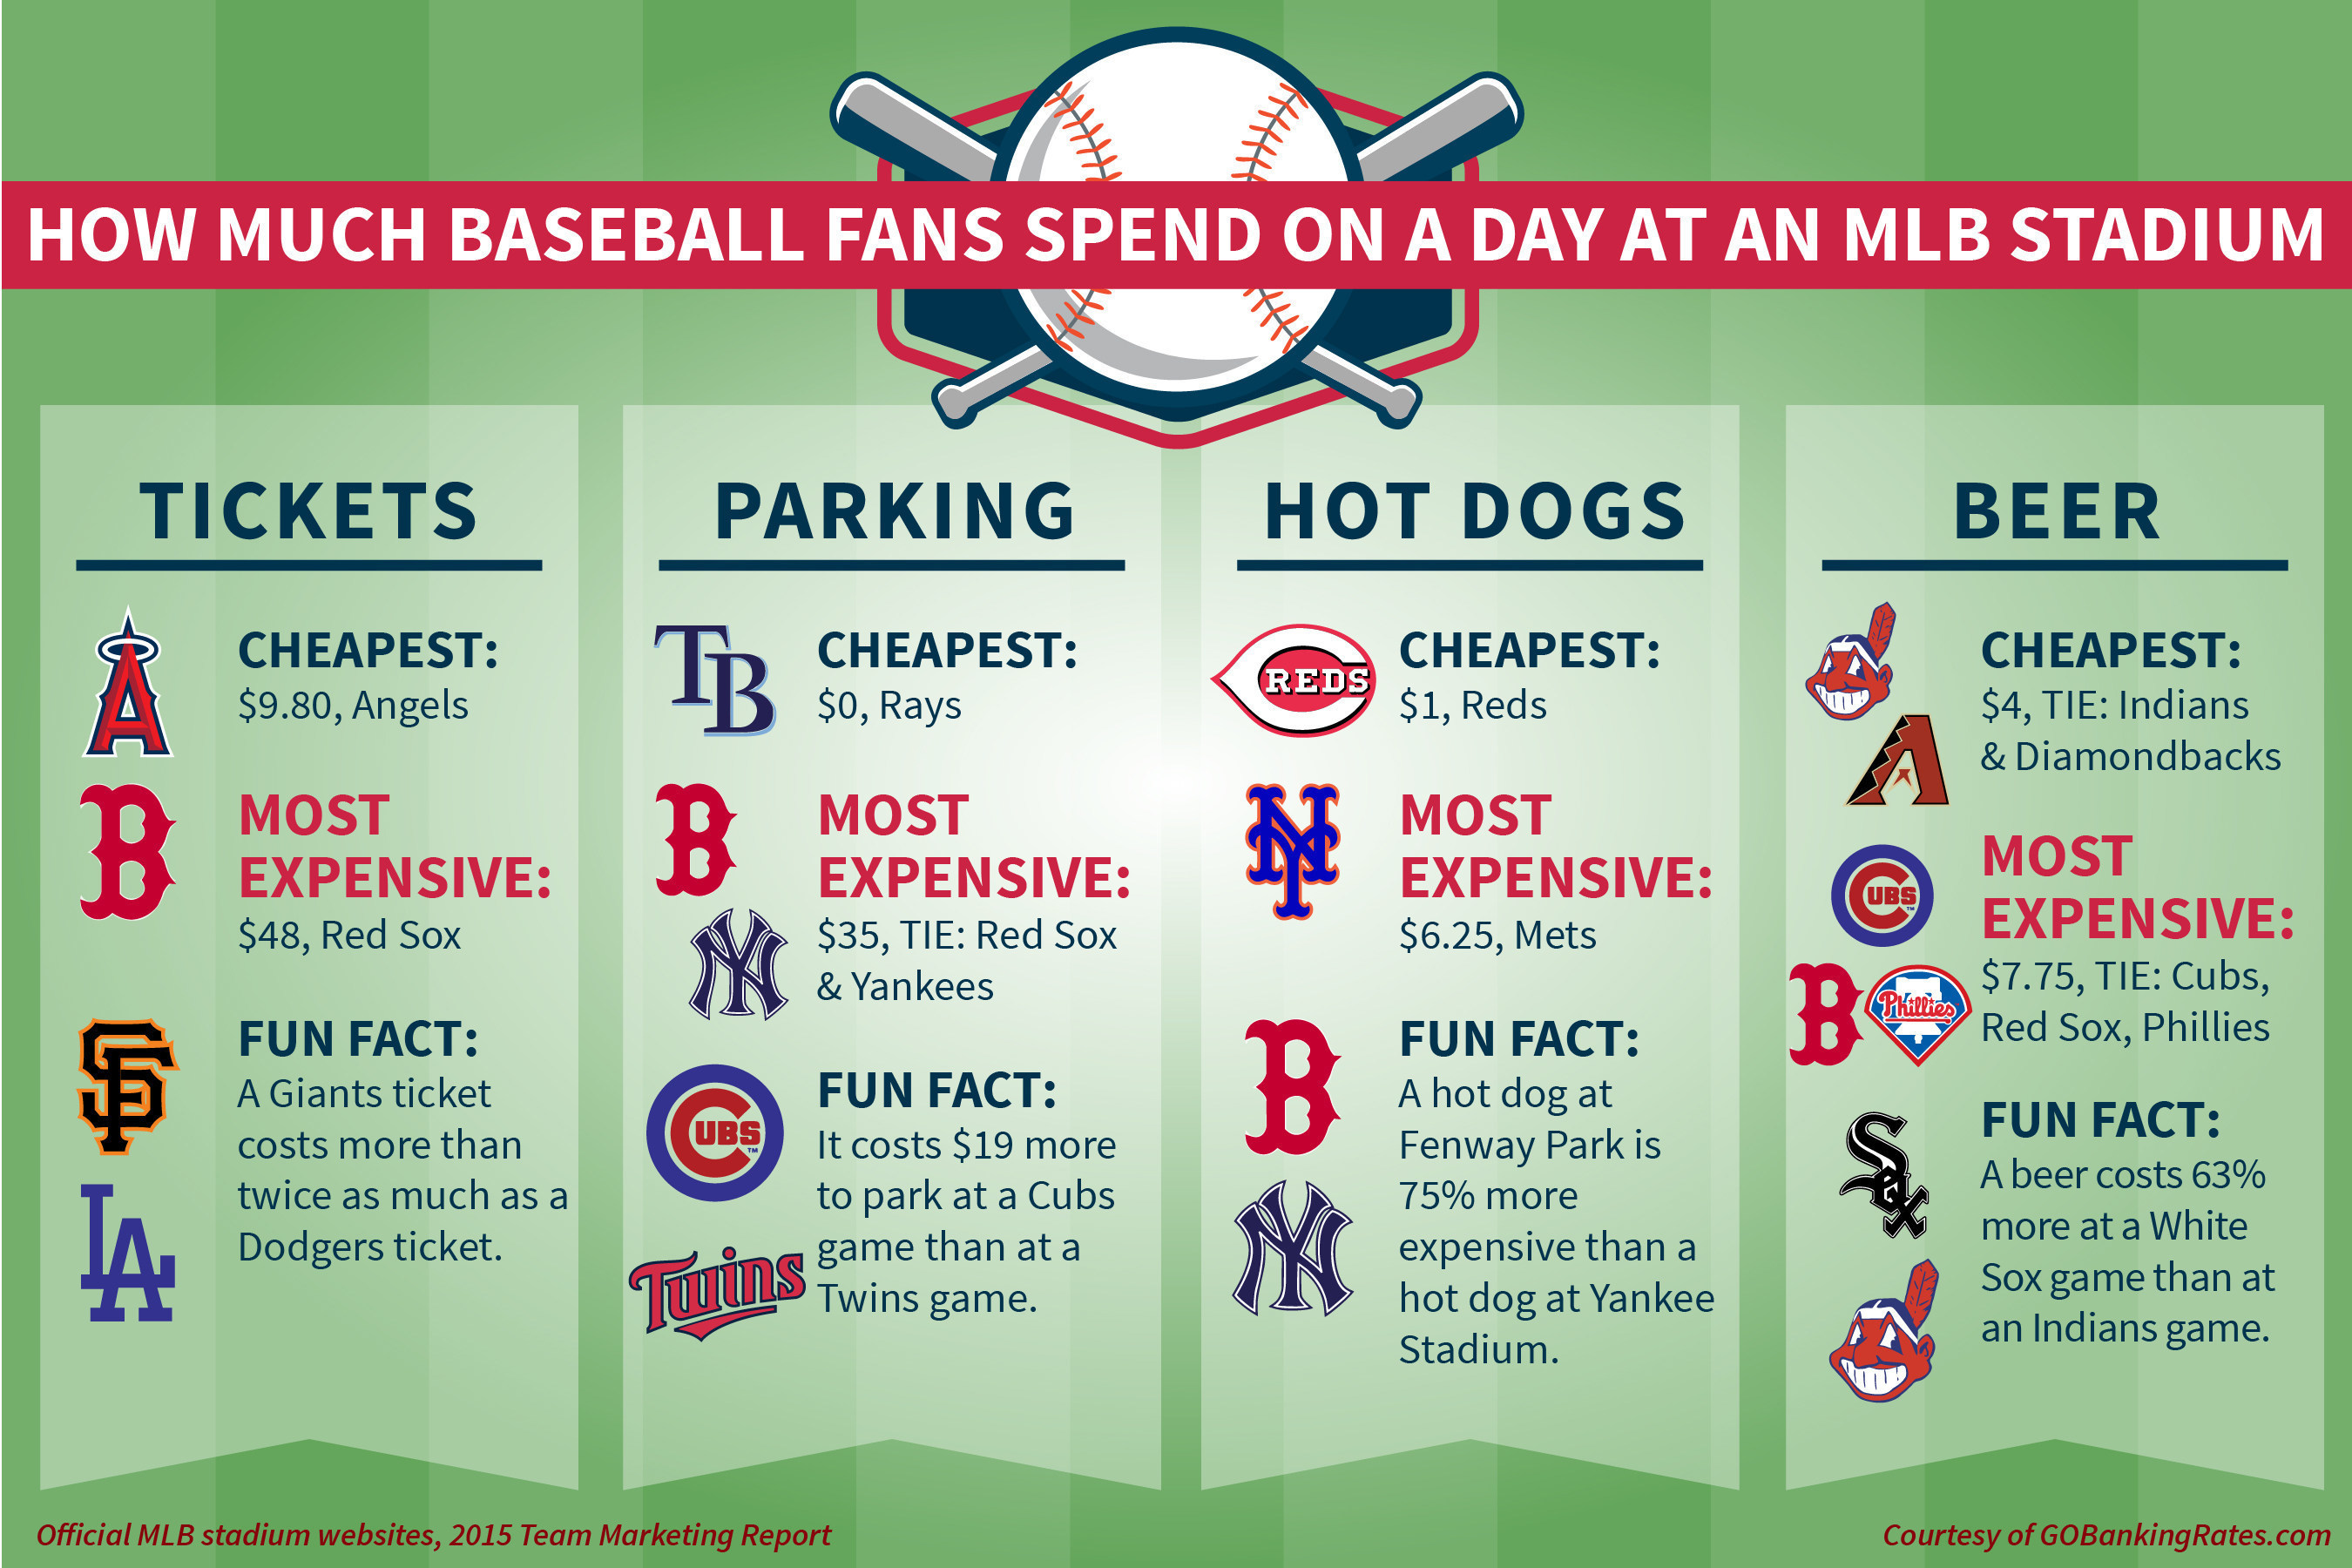 What does a Washington Nationals game cost fans?